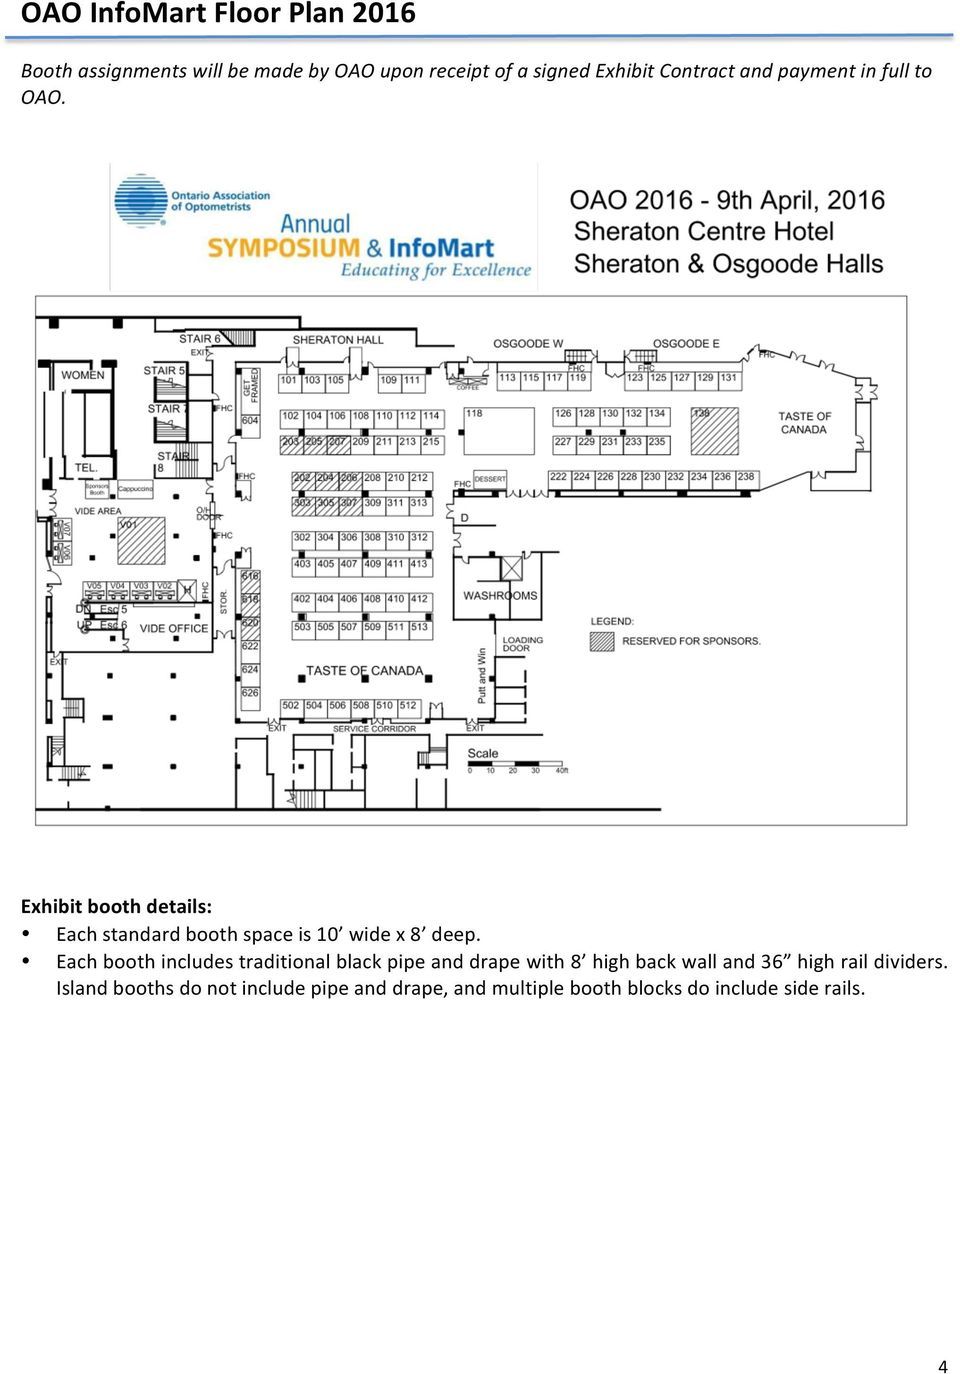 Exhibit booth details: Each standard booth space is 10 wide x 8 deep.